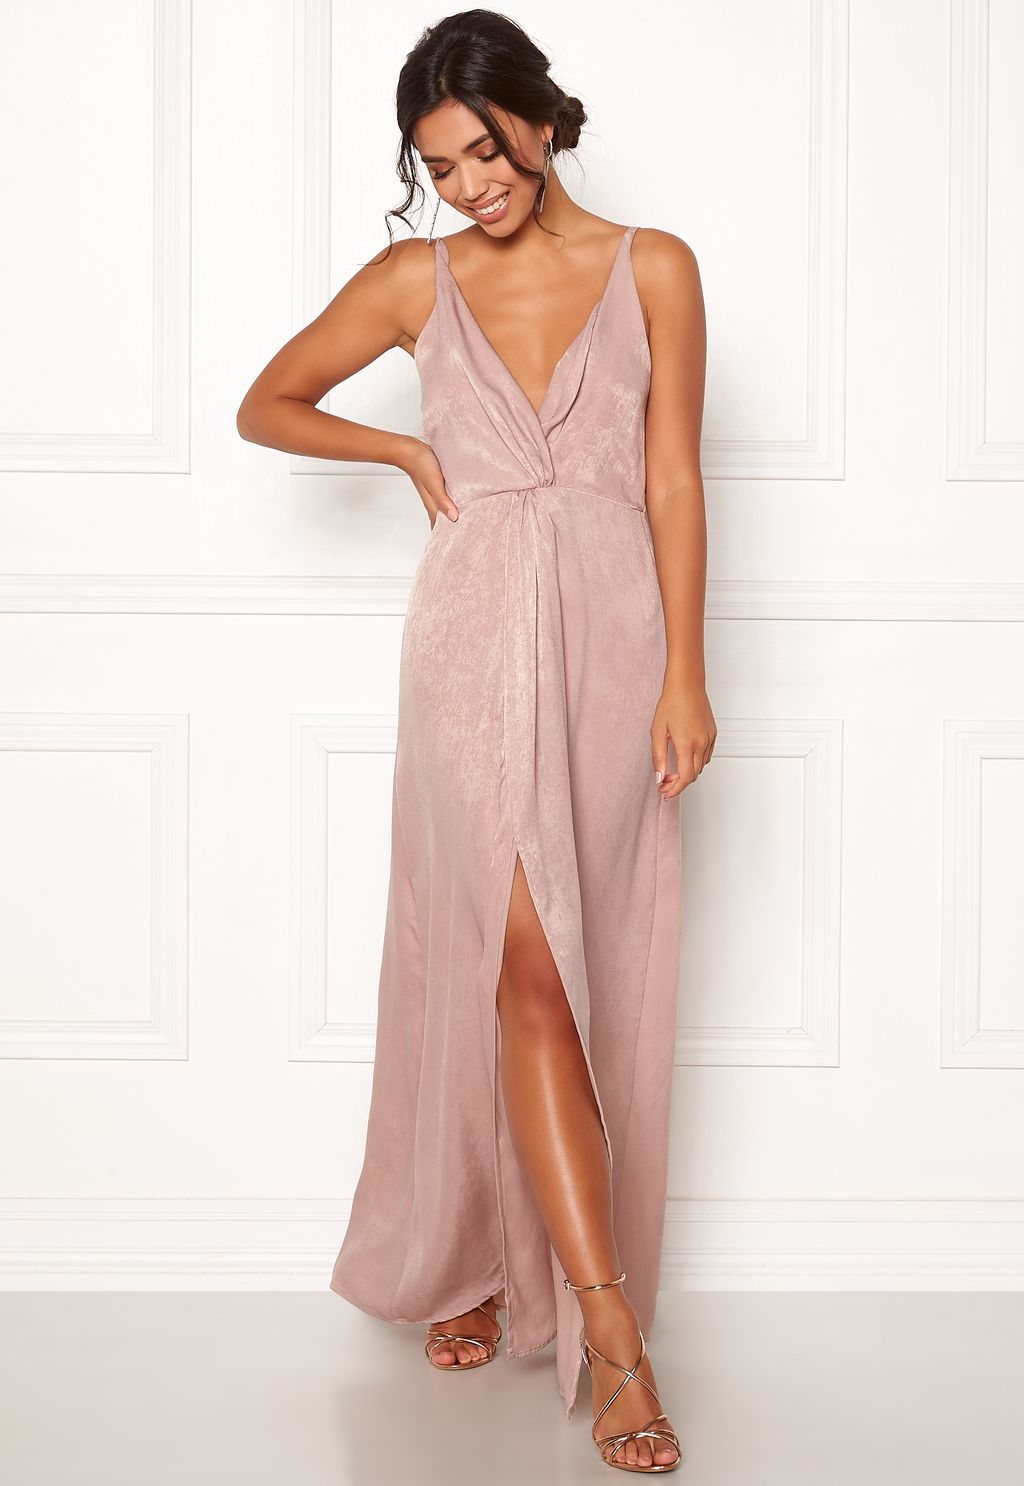 Marianna Front Twist Gown Silver Coloured   Pink - Bubbleroom  c379be6df5d3b